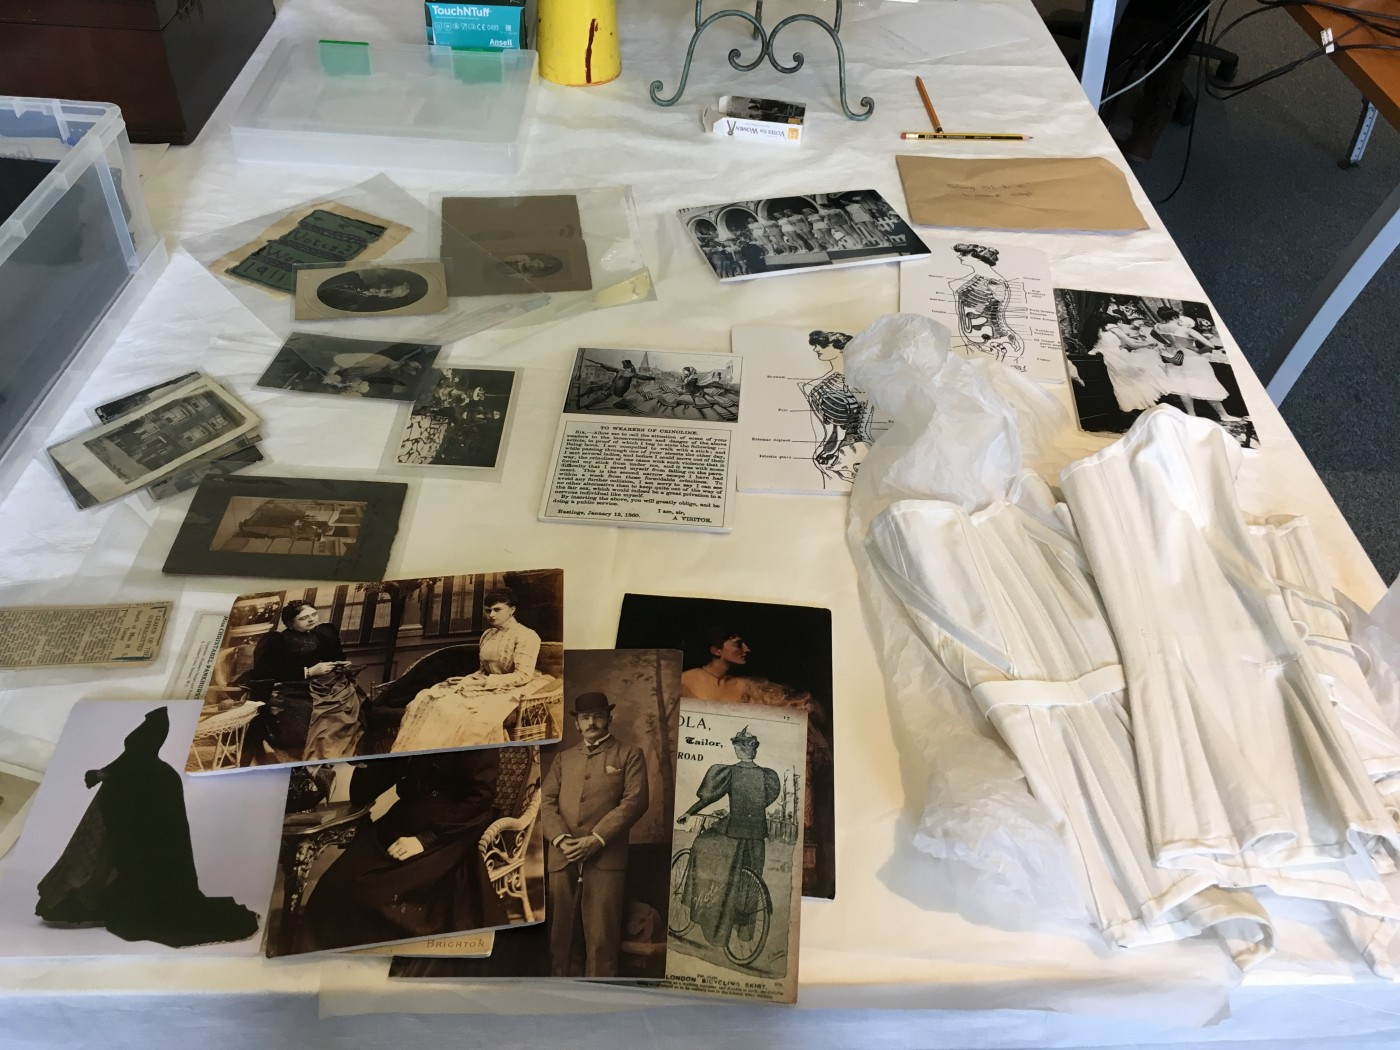 Photographs and a reproduced Corset from Brighton Museum & Art Gallery collections, taken by Author, 7th February 2018.